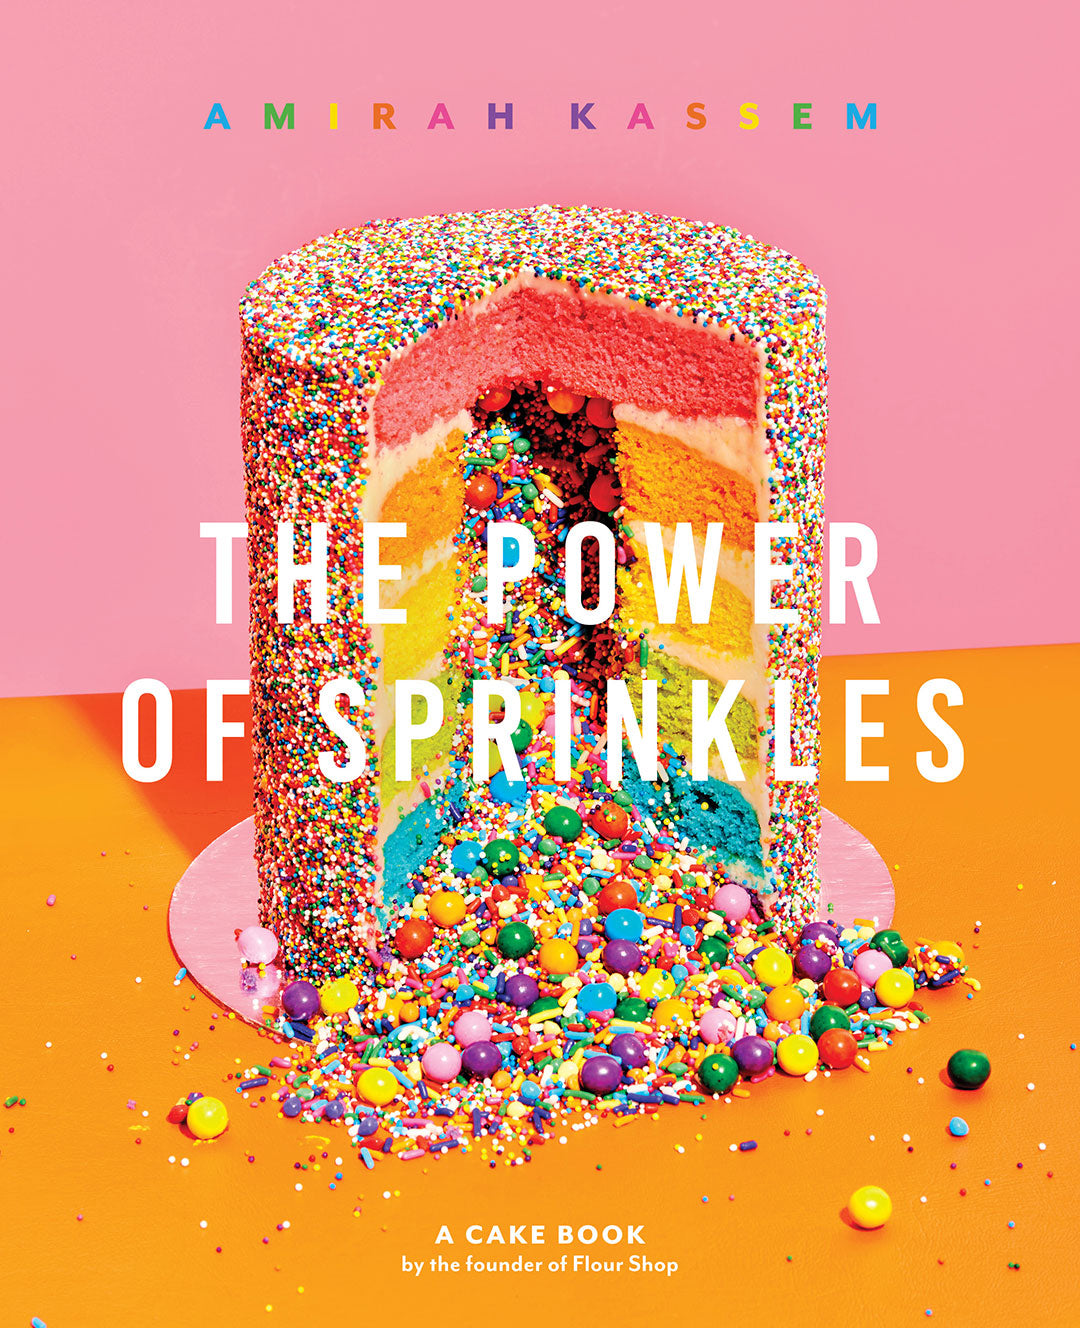 Coffee Table Book | The Power of Sprinkles | A Cake Book